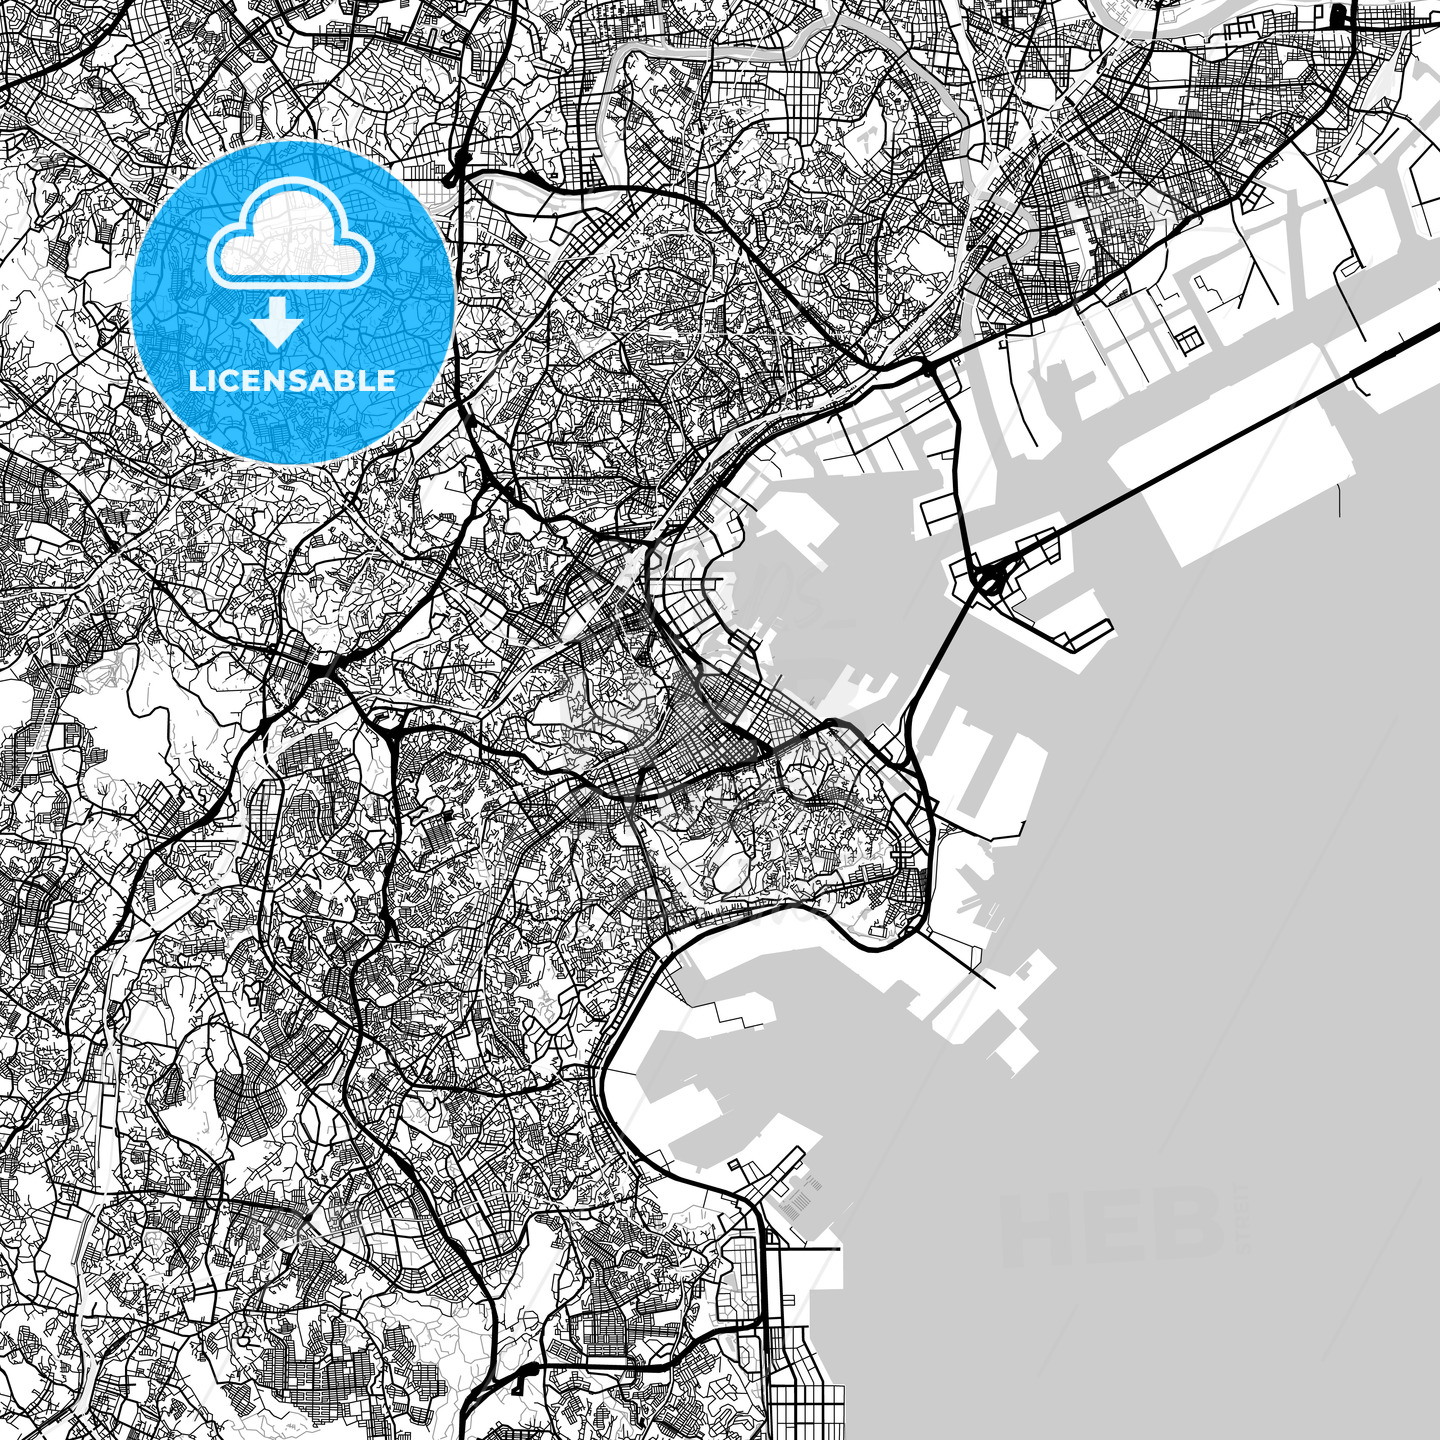 横浜市 Yokohama, City Map, Light - HEBSTREITS